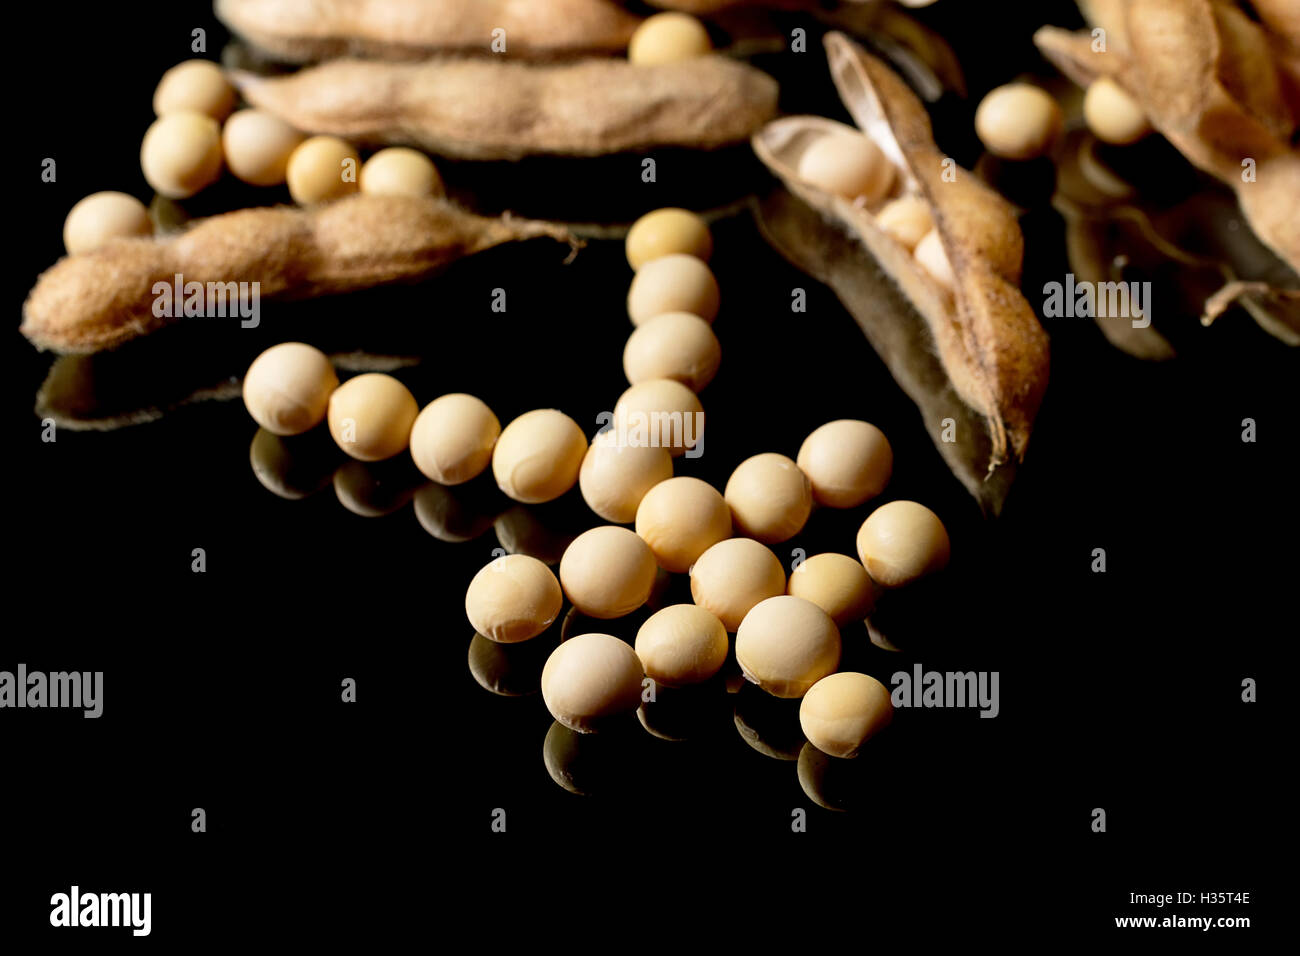 Soybeans forming Yen symbol. Soybean market. Agriculture Soybean pods. - Stock Image